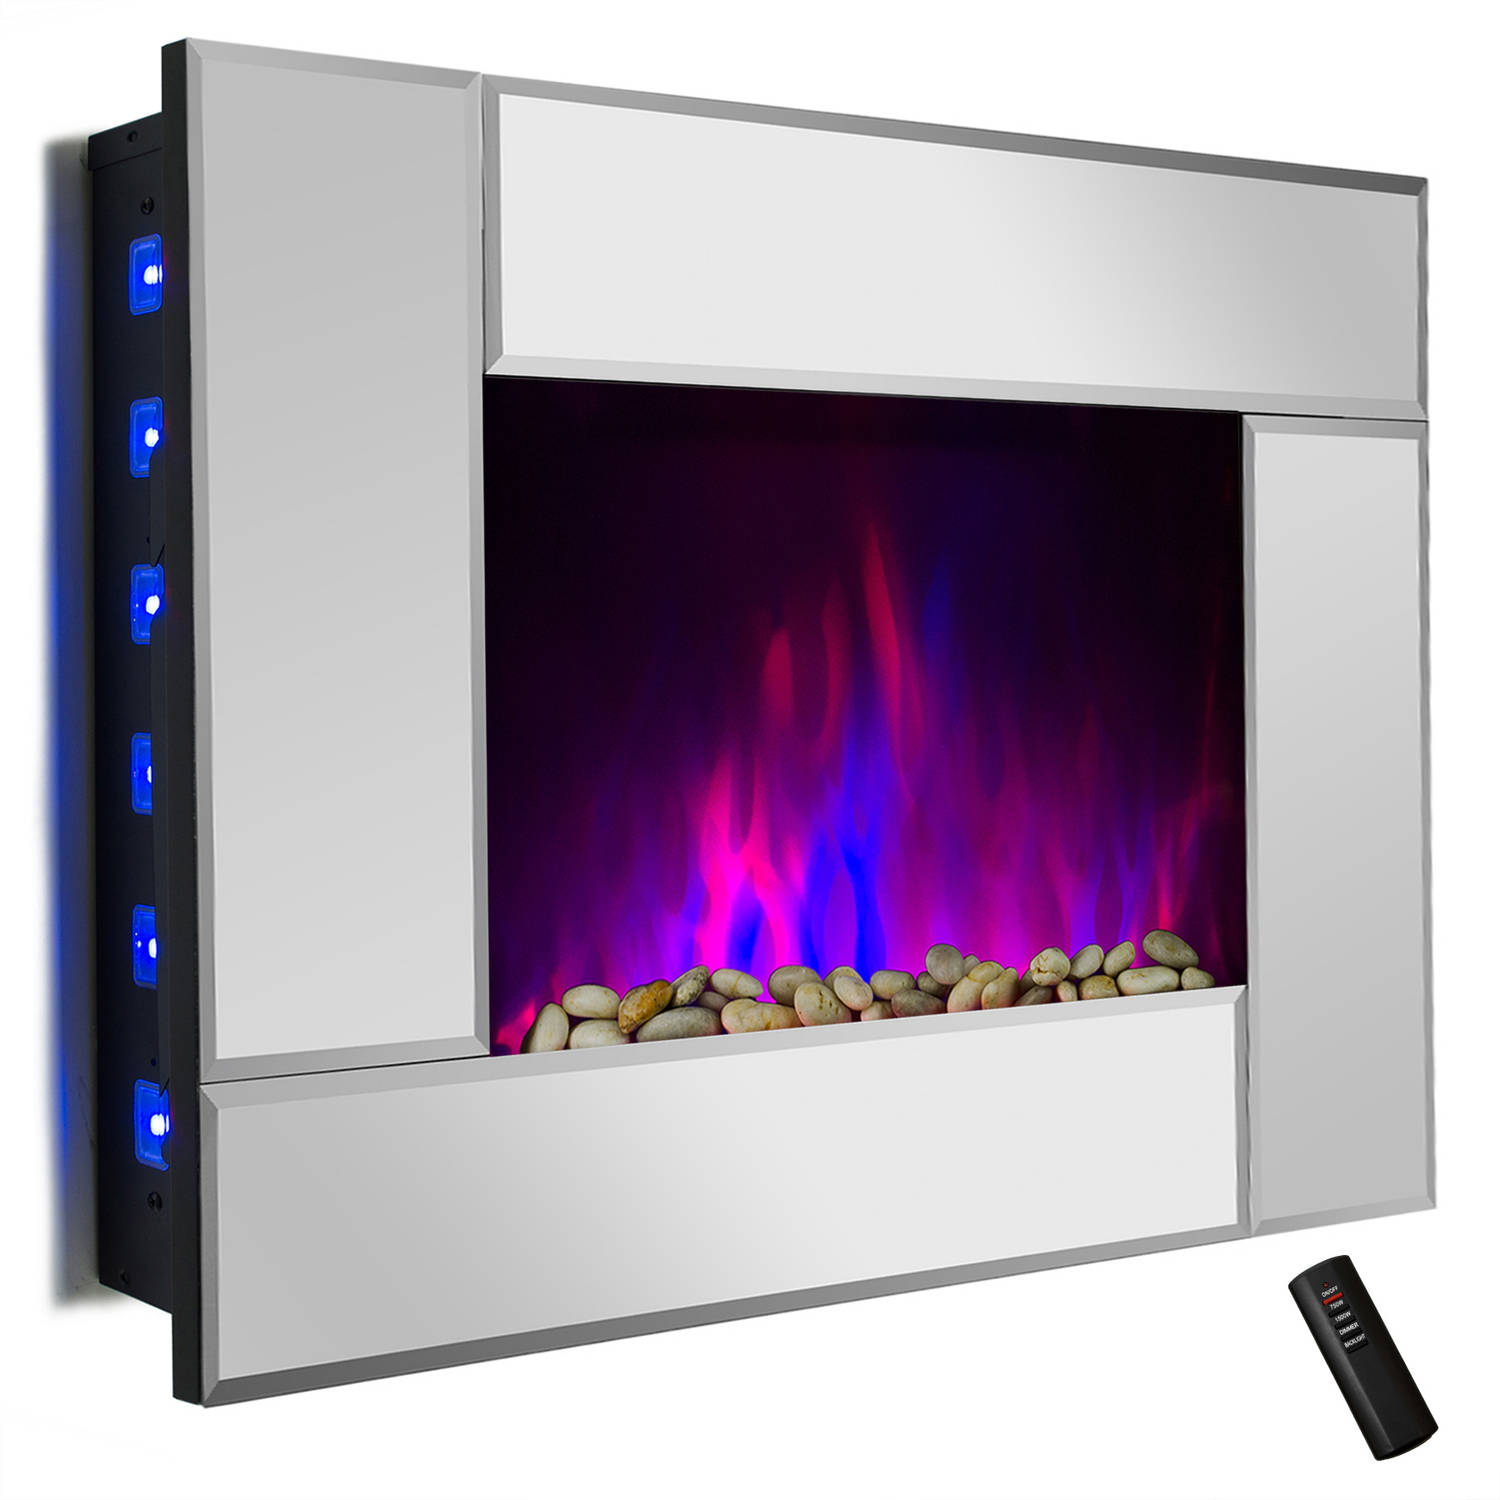 "AKDY FP0050 36"" 1500W Wall Mount Electric Fireplace Heater with Tempered Glass, Pebbles, Logs and Remote Control, Mirror"